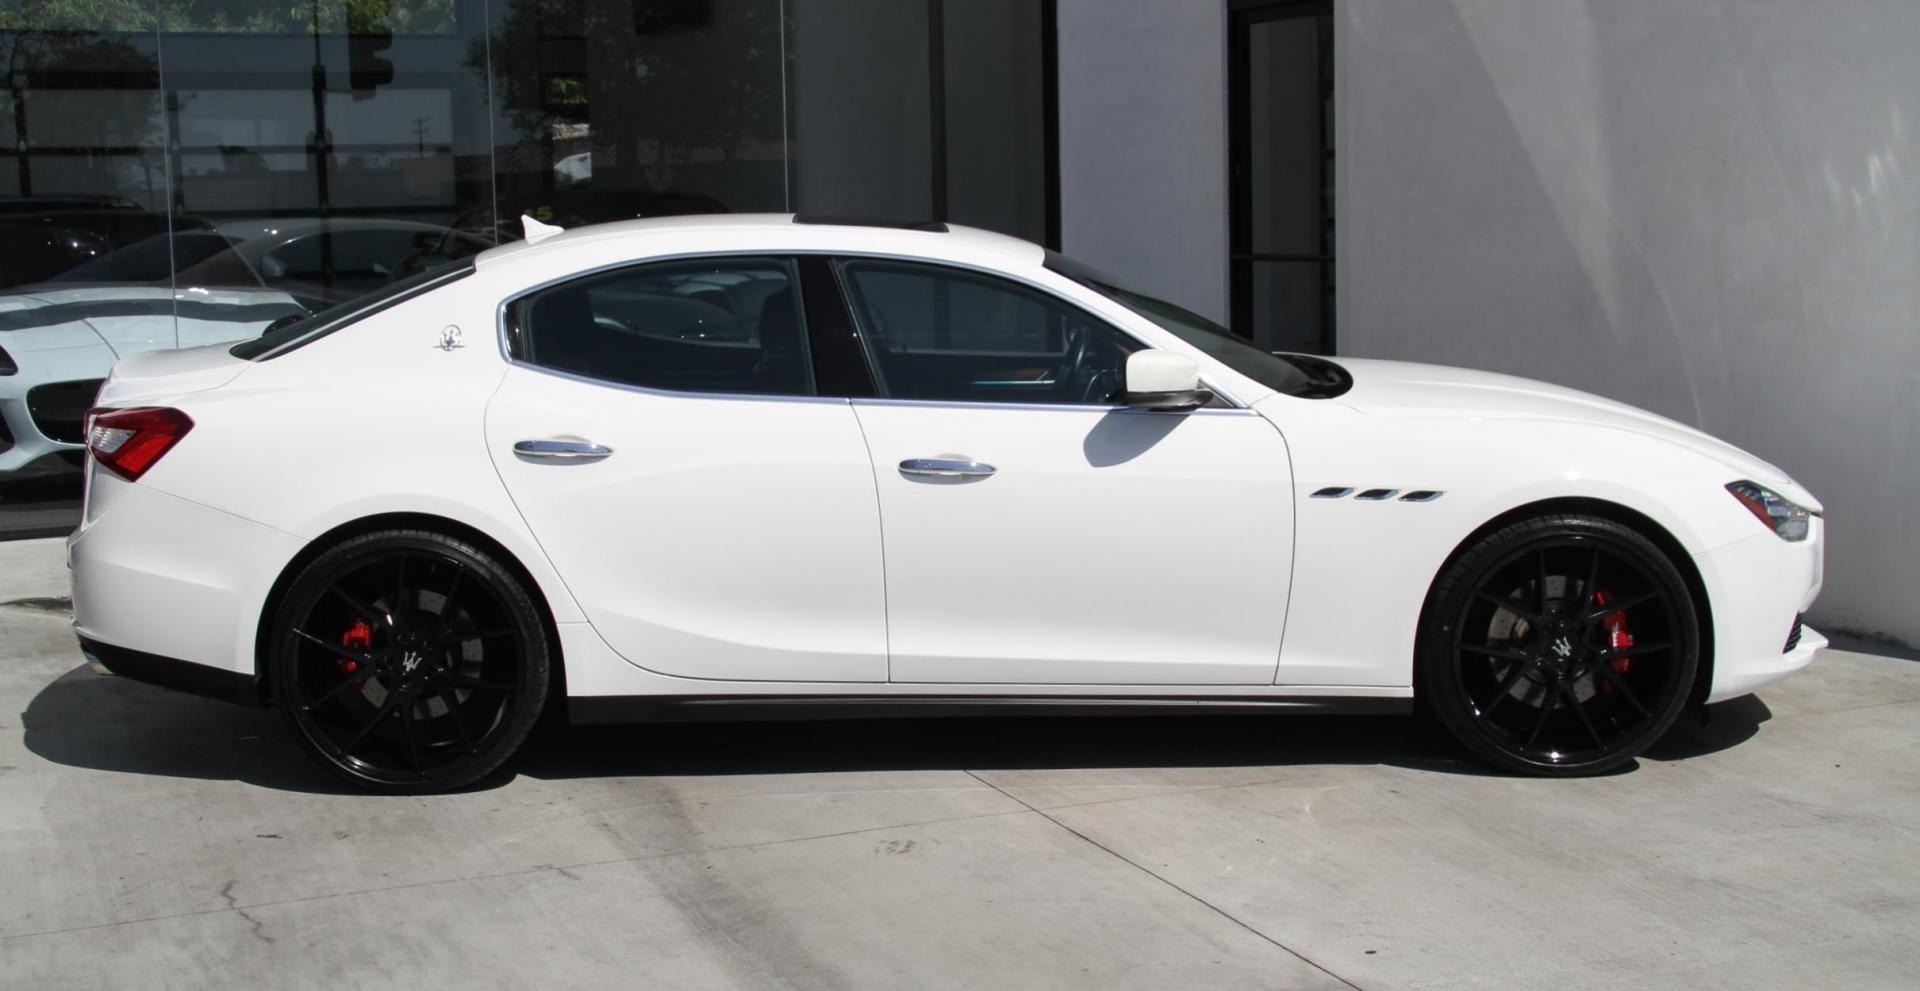 Back Up Sensors >> 2015 Maserati Ghibli S Q4 Stock # 5995 for sale near ...